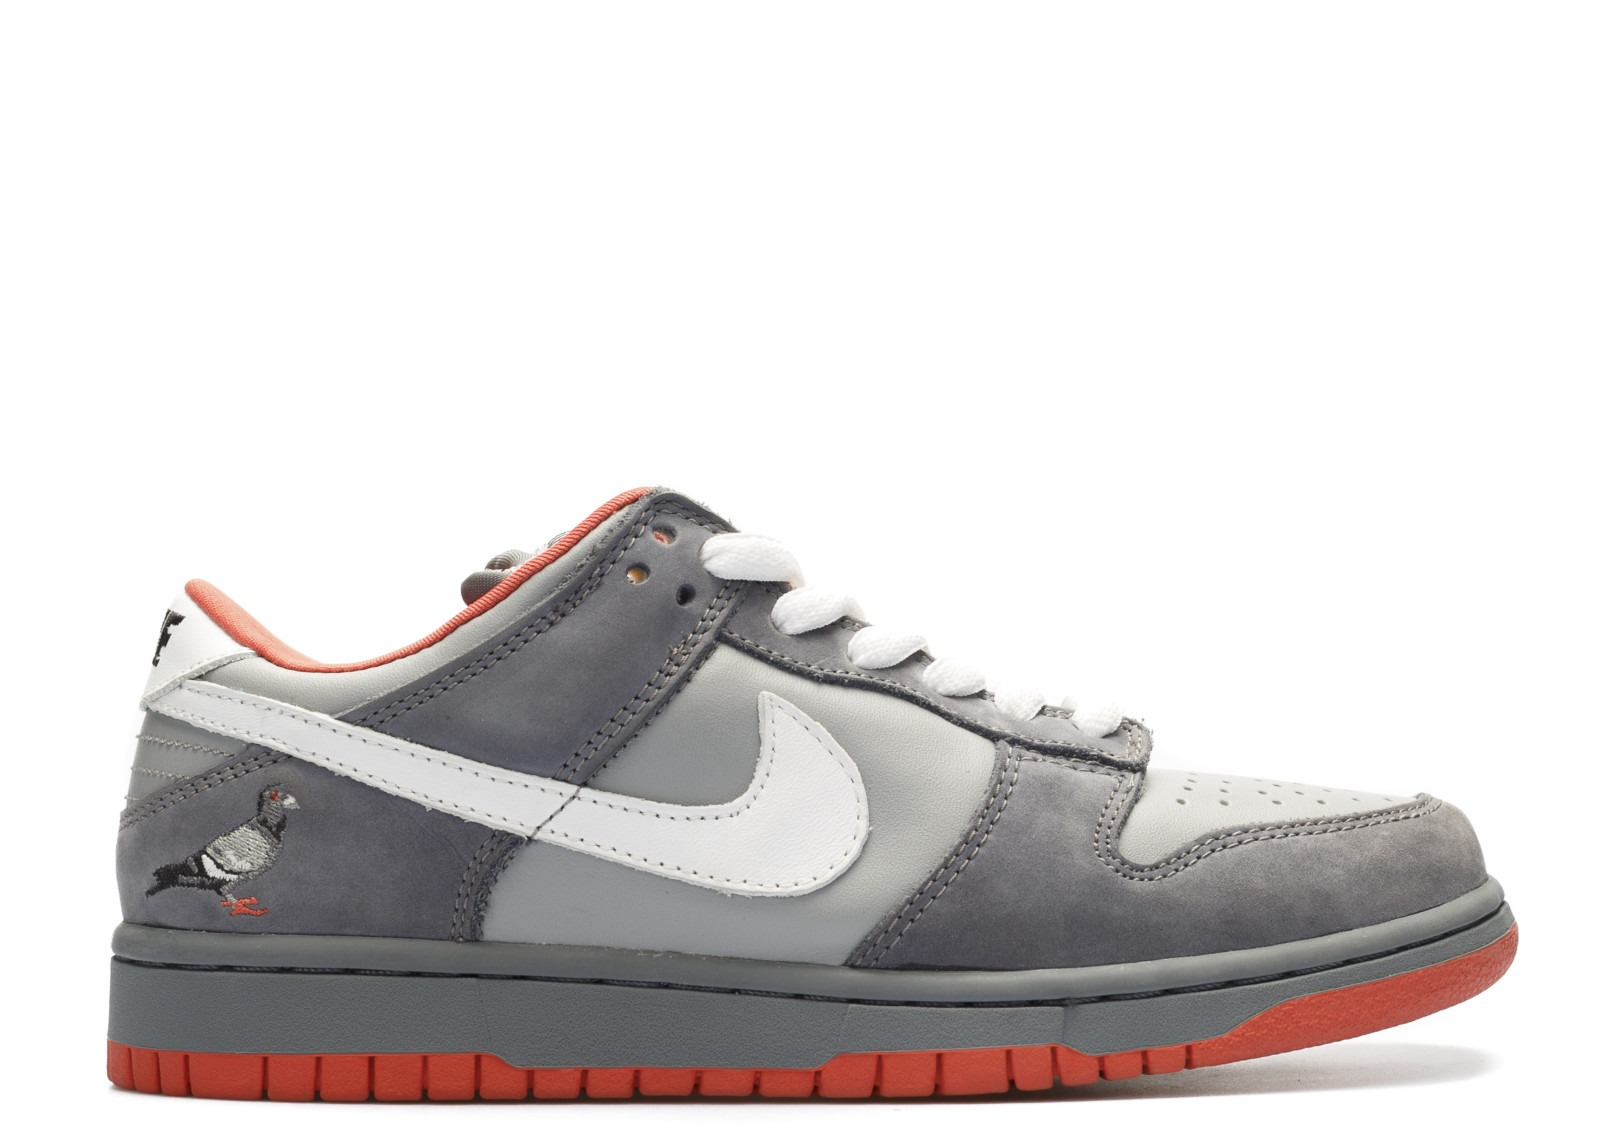 Top 10 Best Nike SB Dunks Of All Time - NYC Pigeon